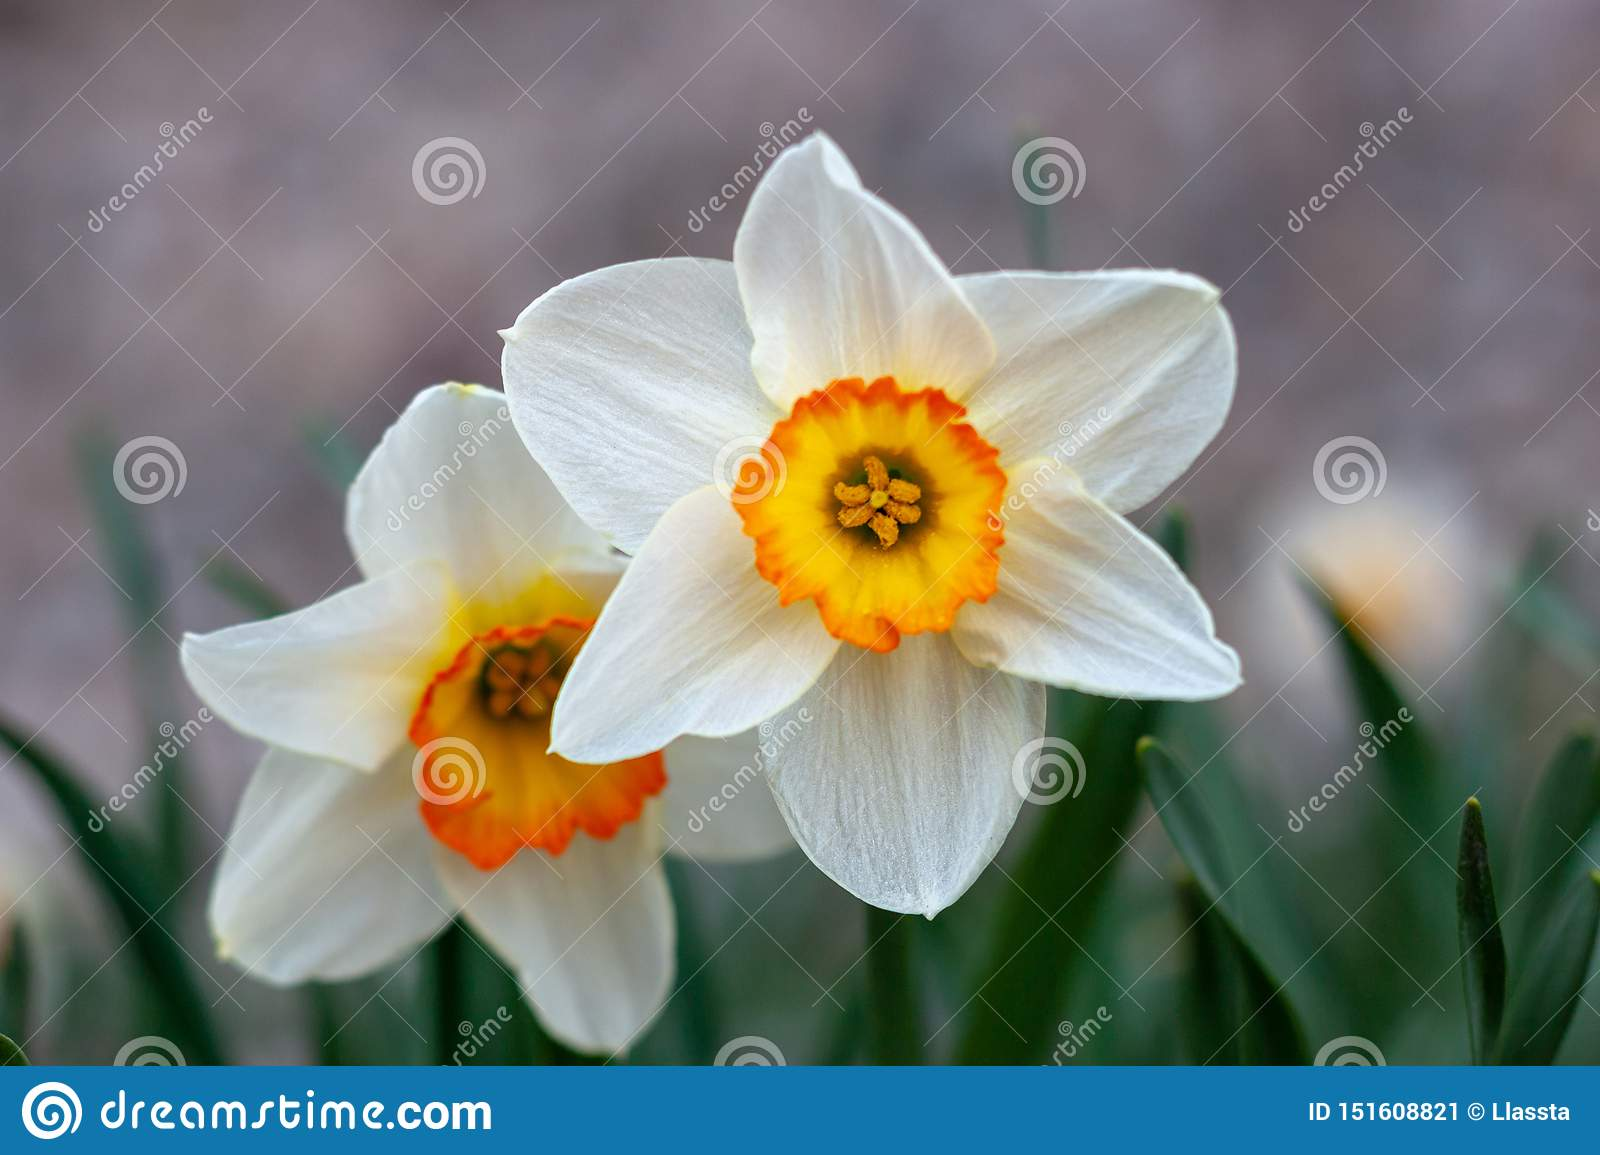 Beautiful white narcissus flower with yellow center